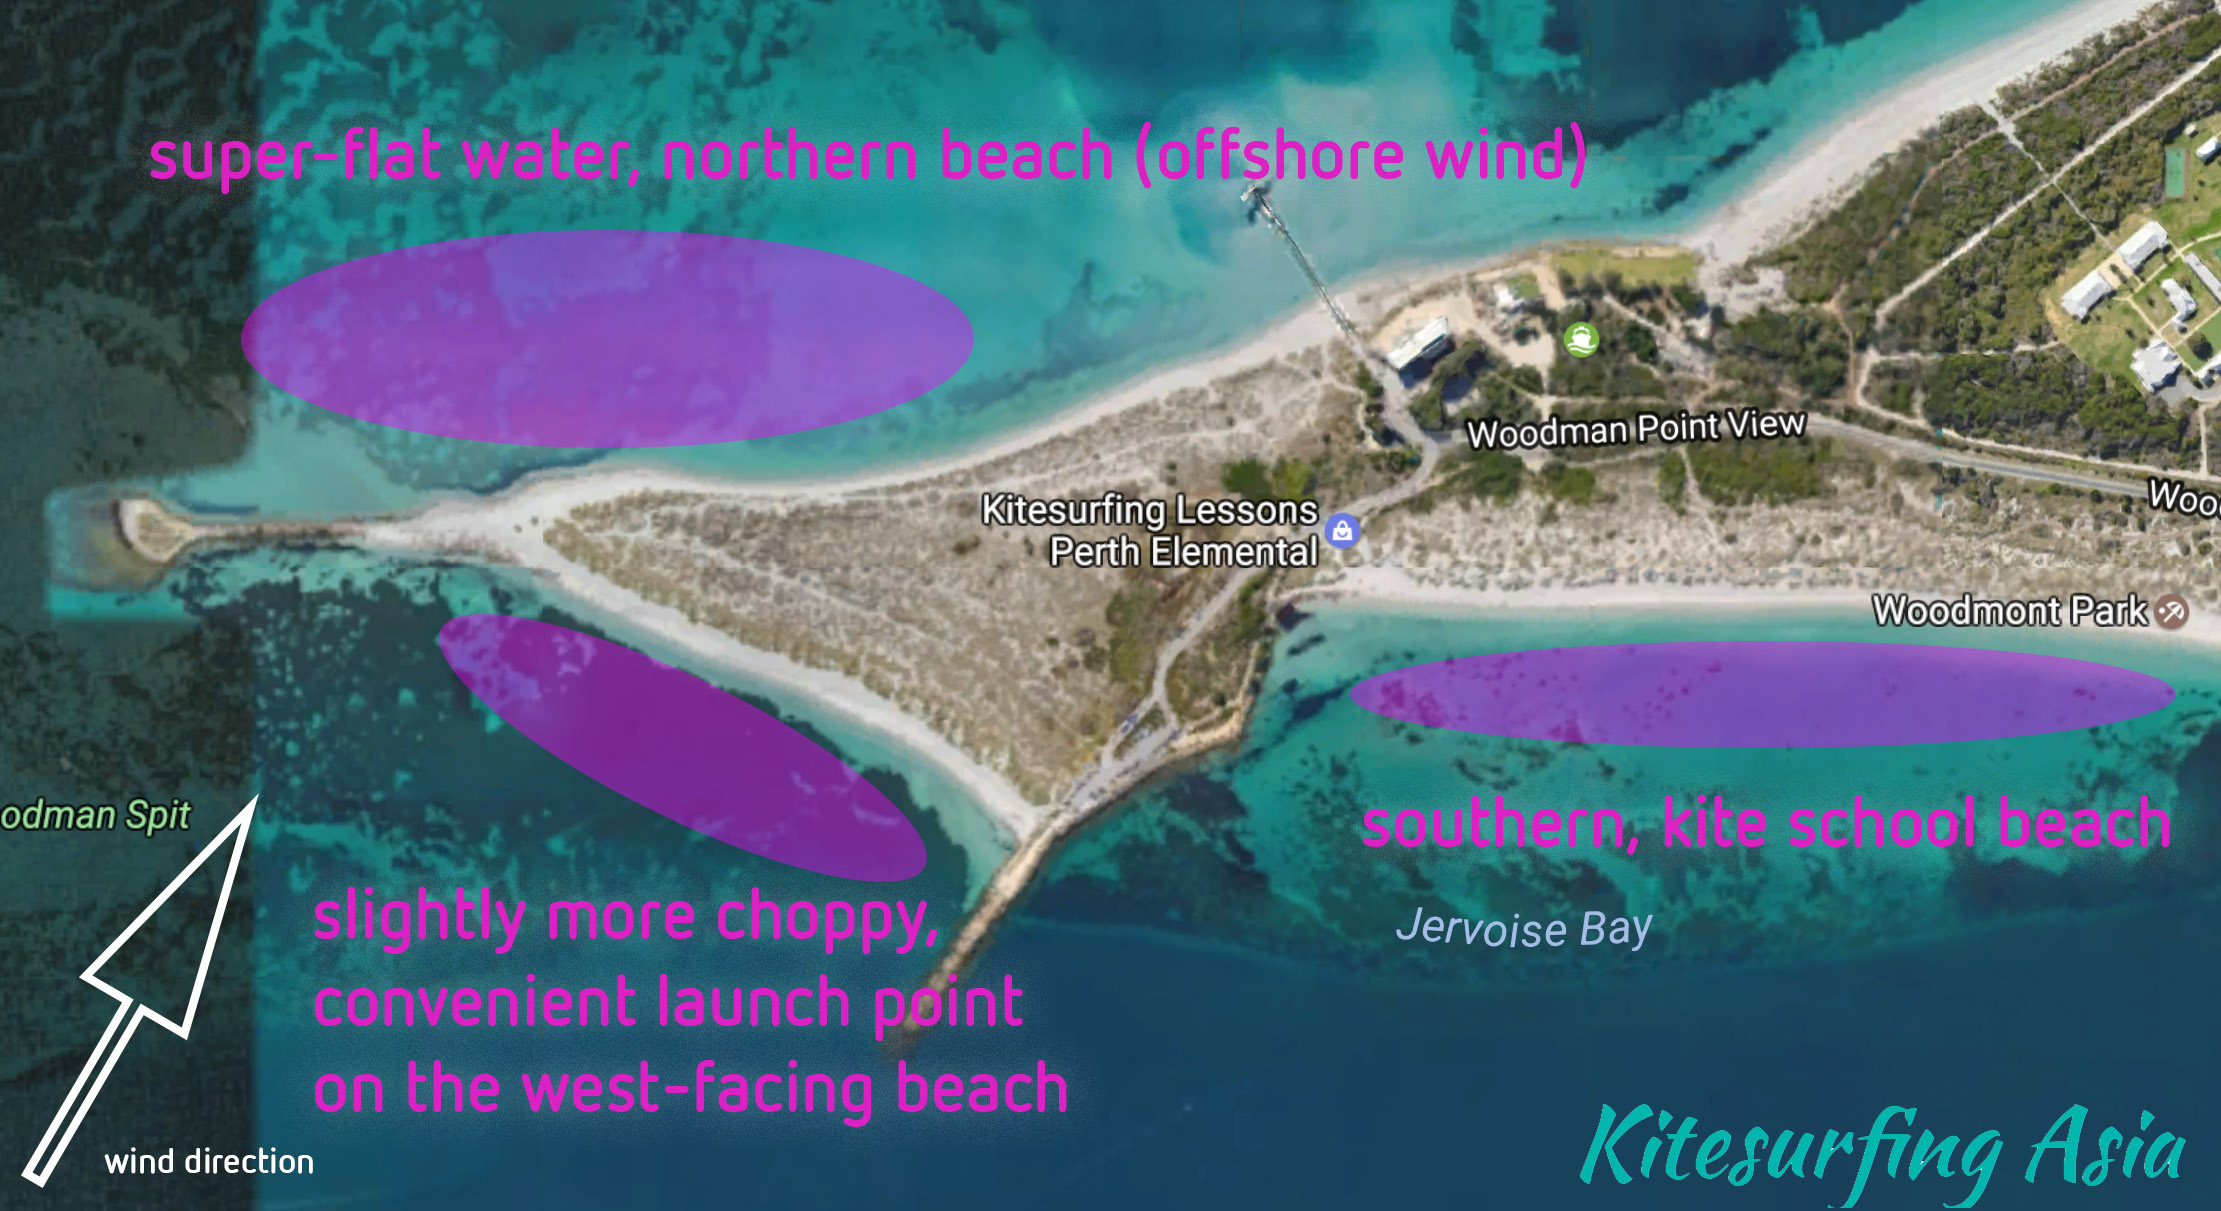 Perth Woodman Point Kitesurfing Spots Overview